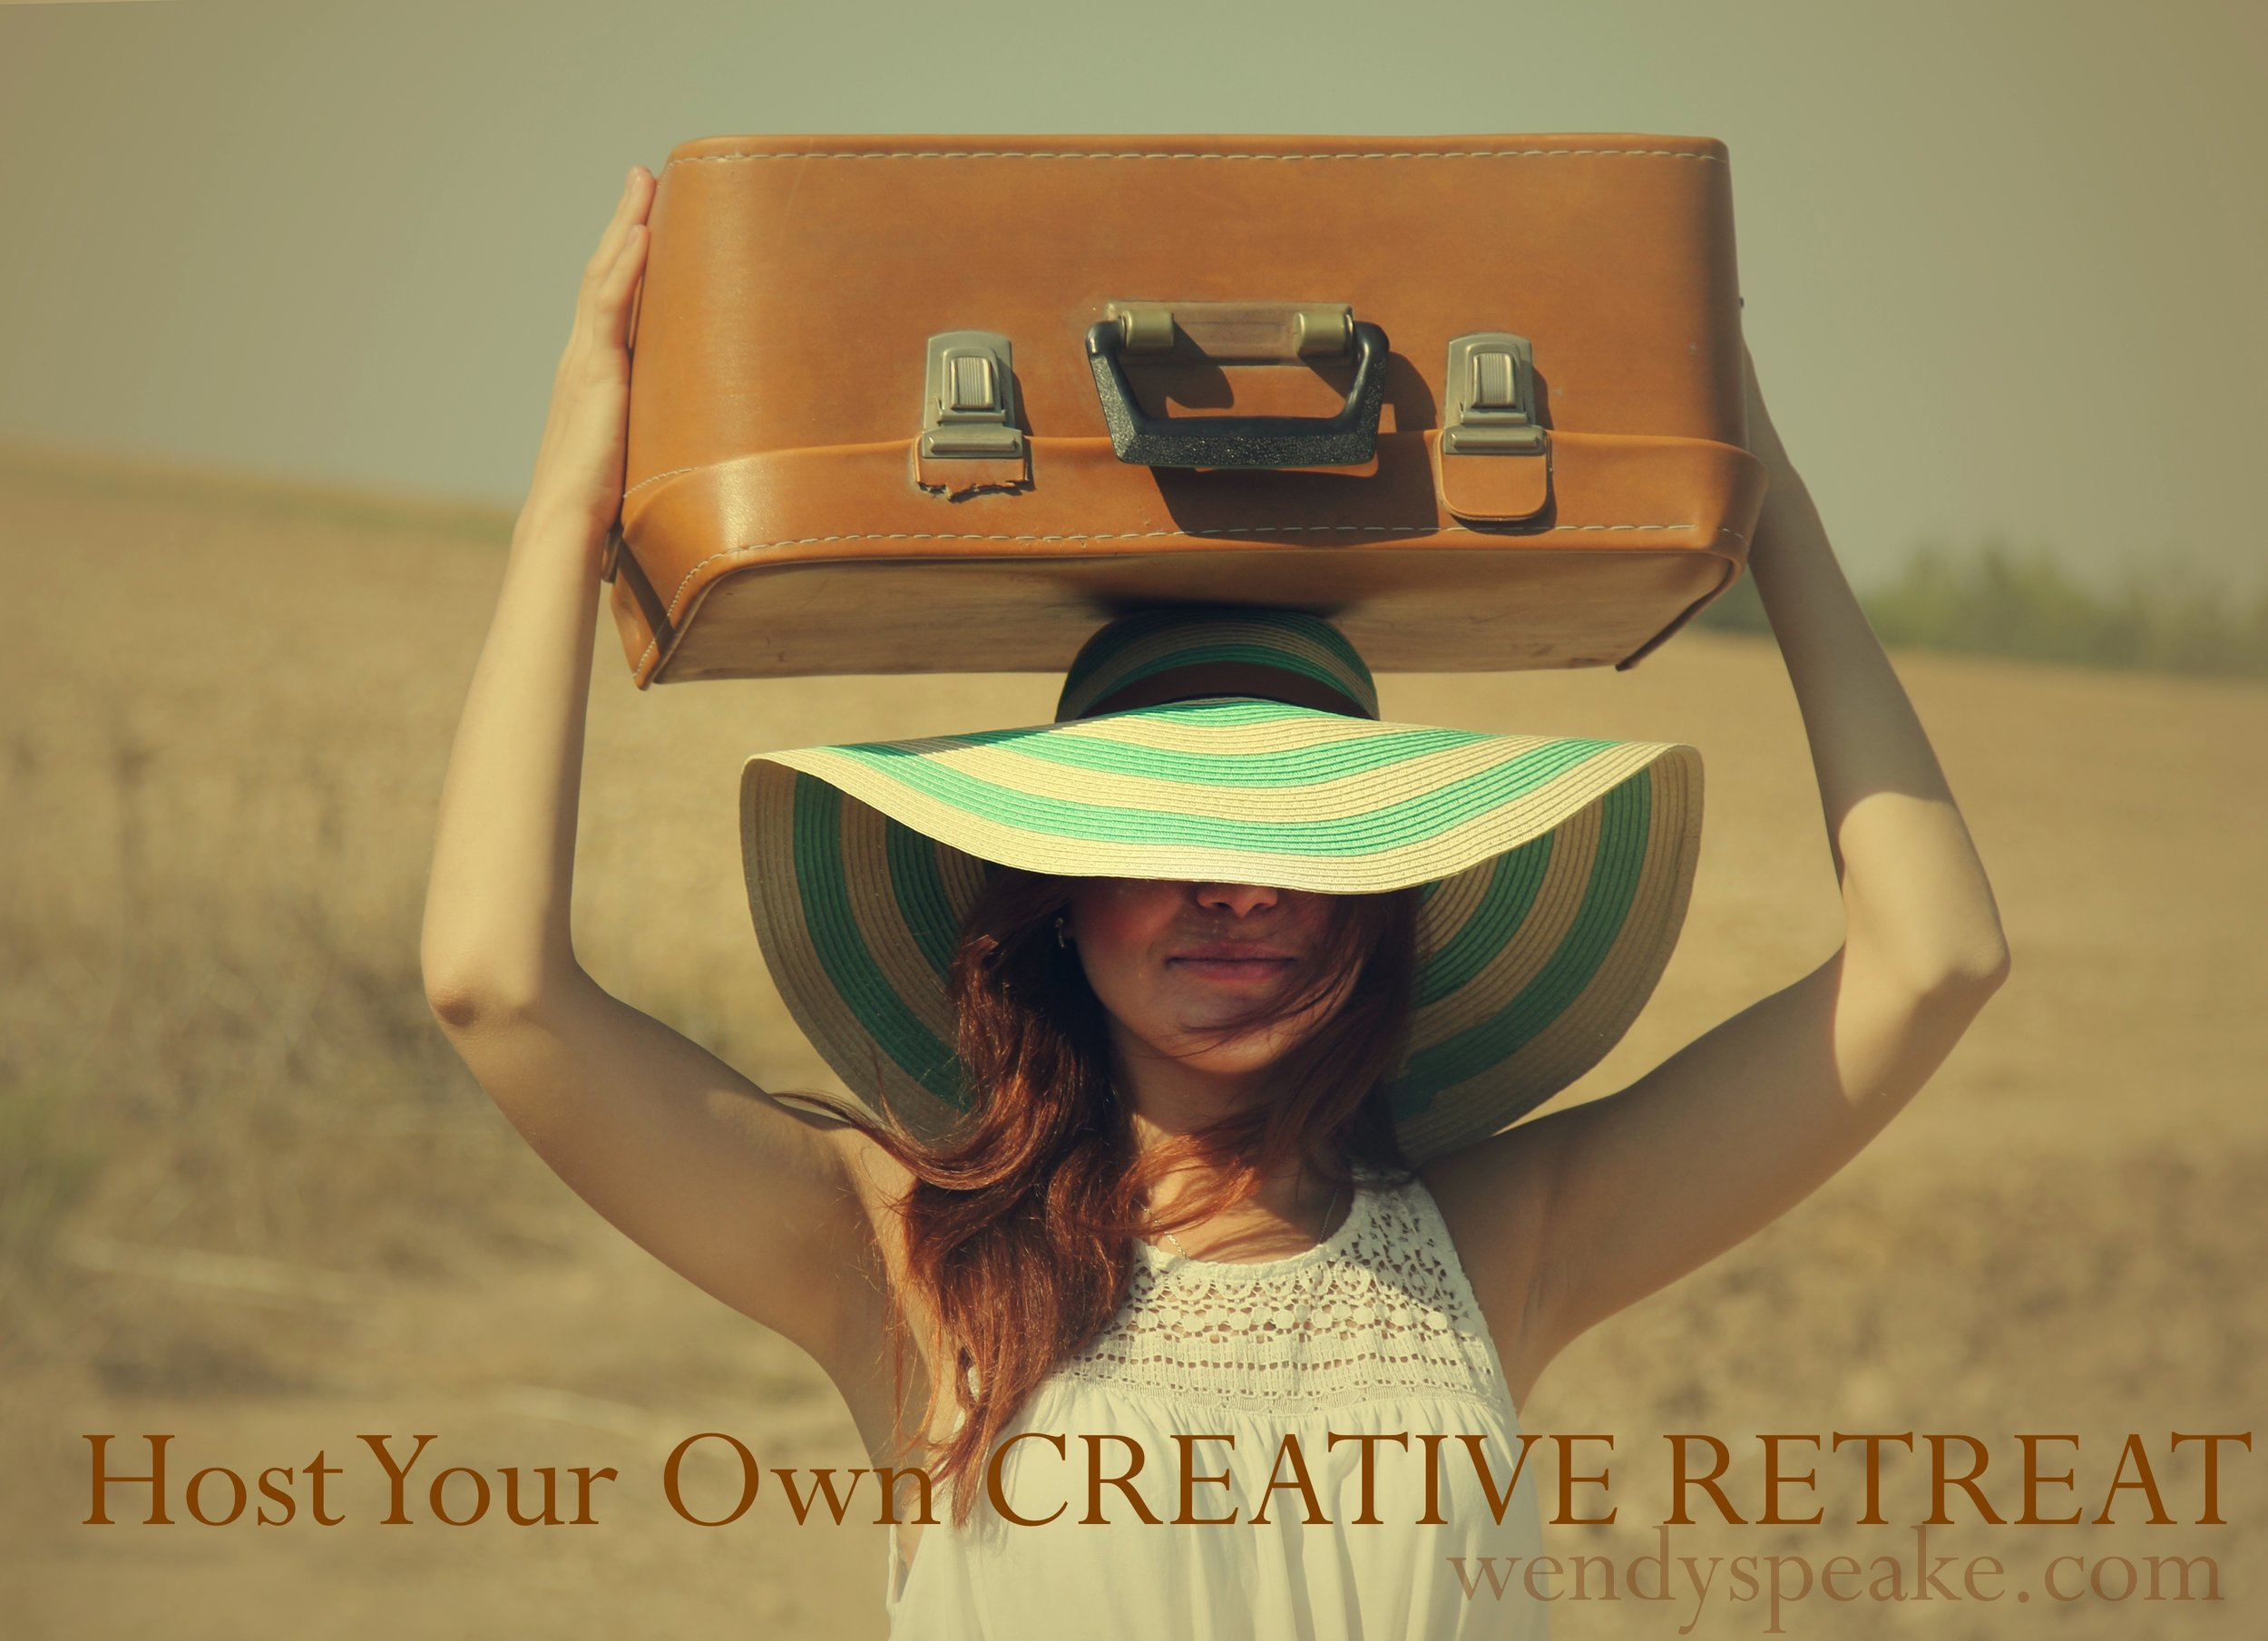 Host your own creative retreat